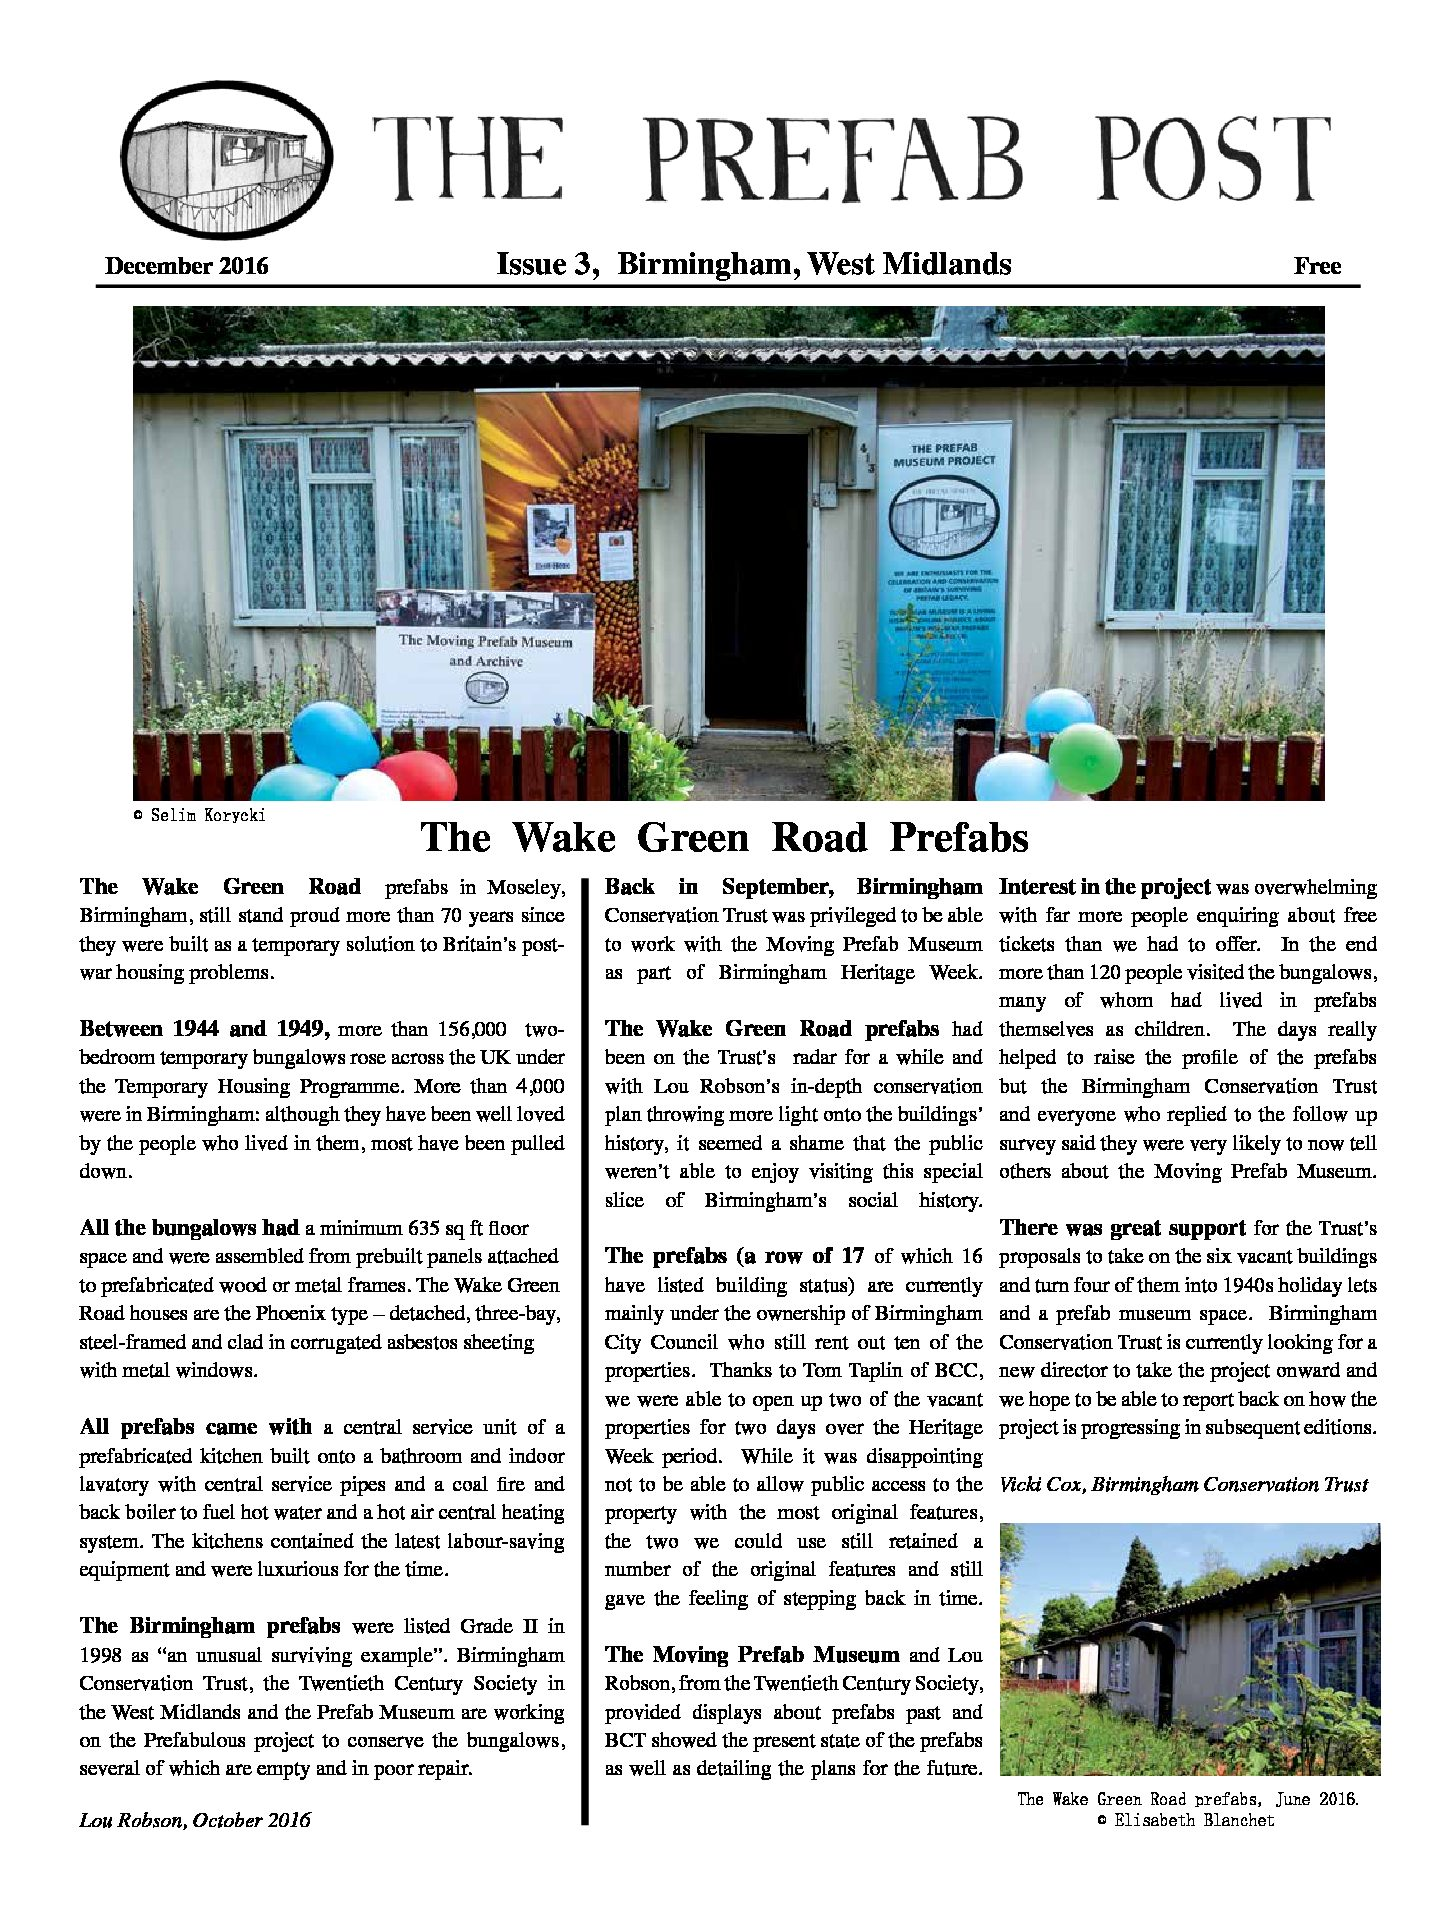 Moving Prefab: Prefab Post Issue 3